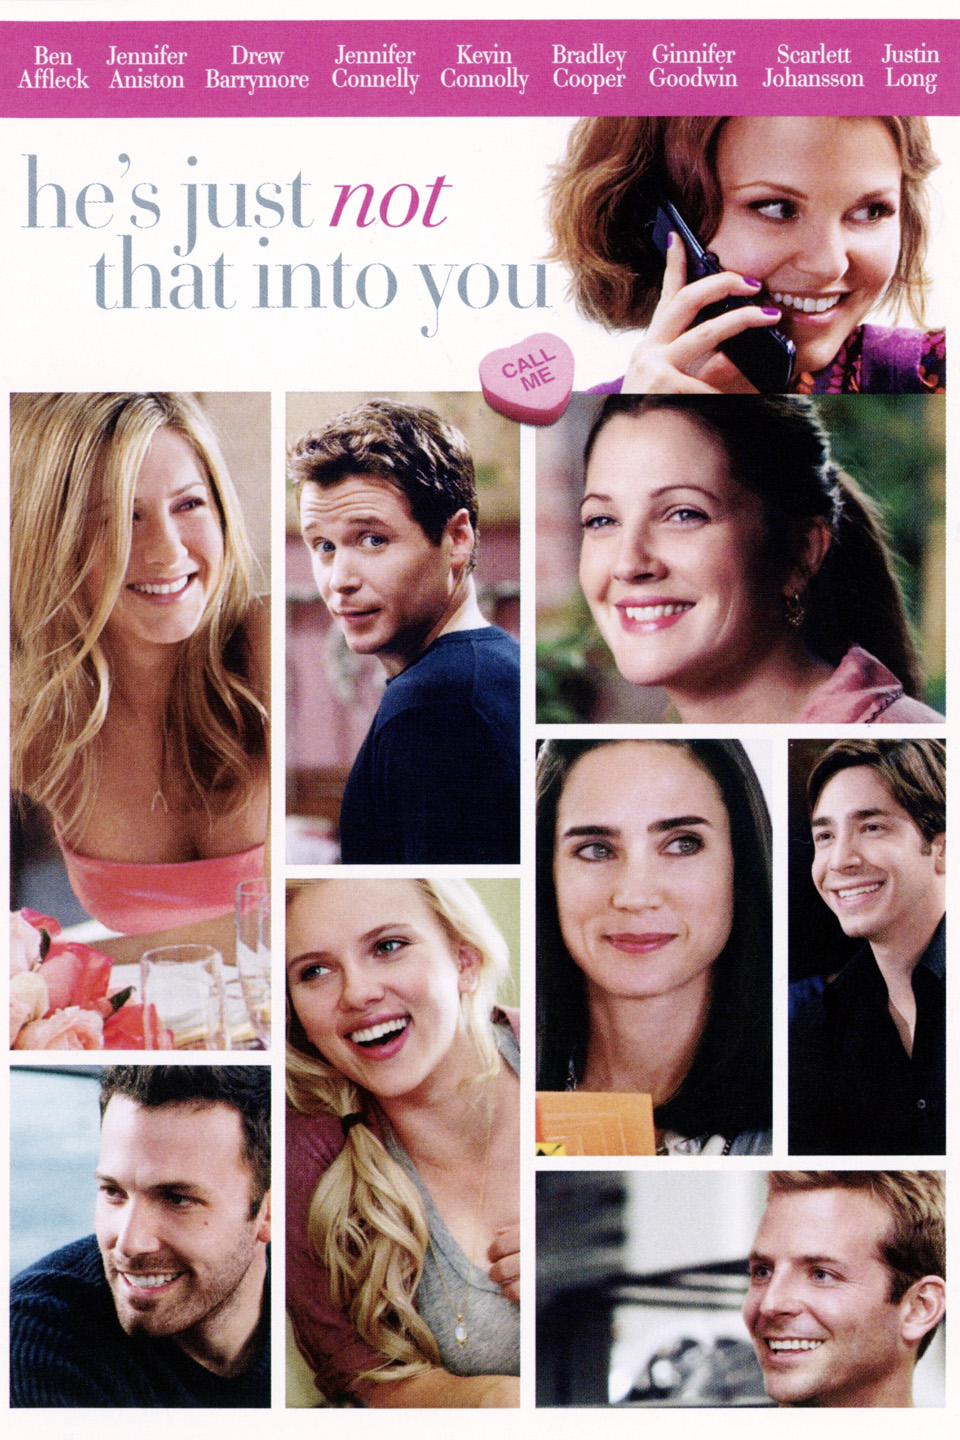 He's Just Not That Into You wwwgstaticcomtvthumbdvdboxart174037p174037